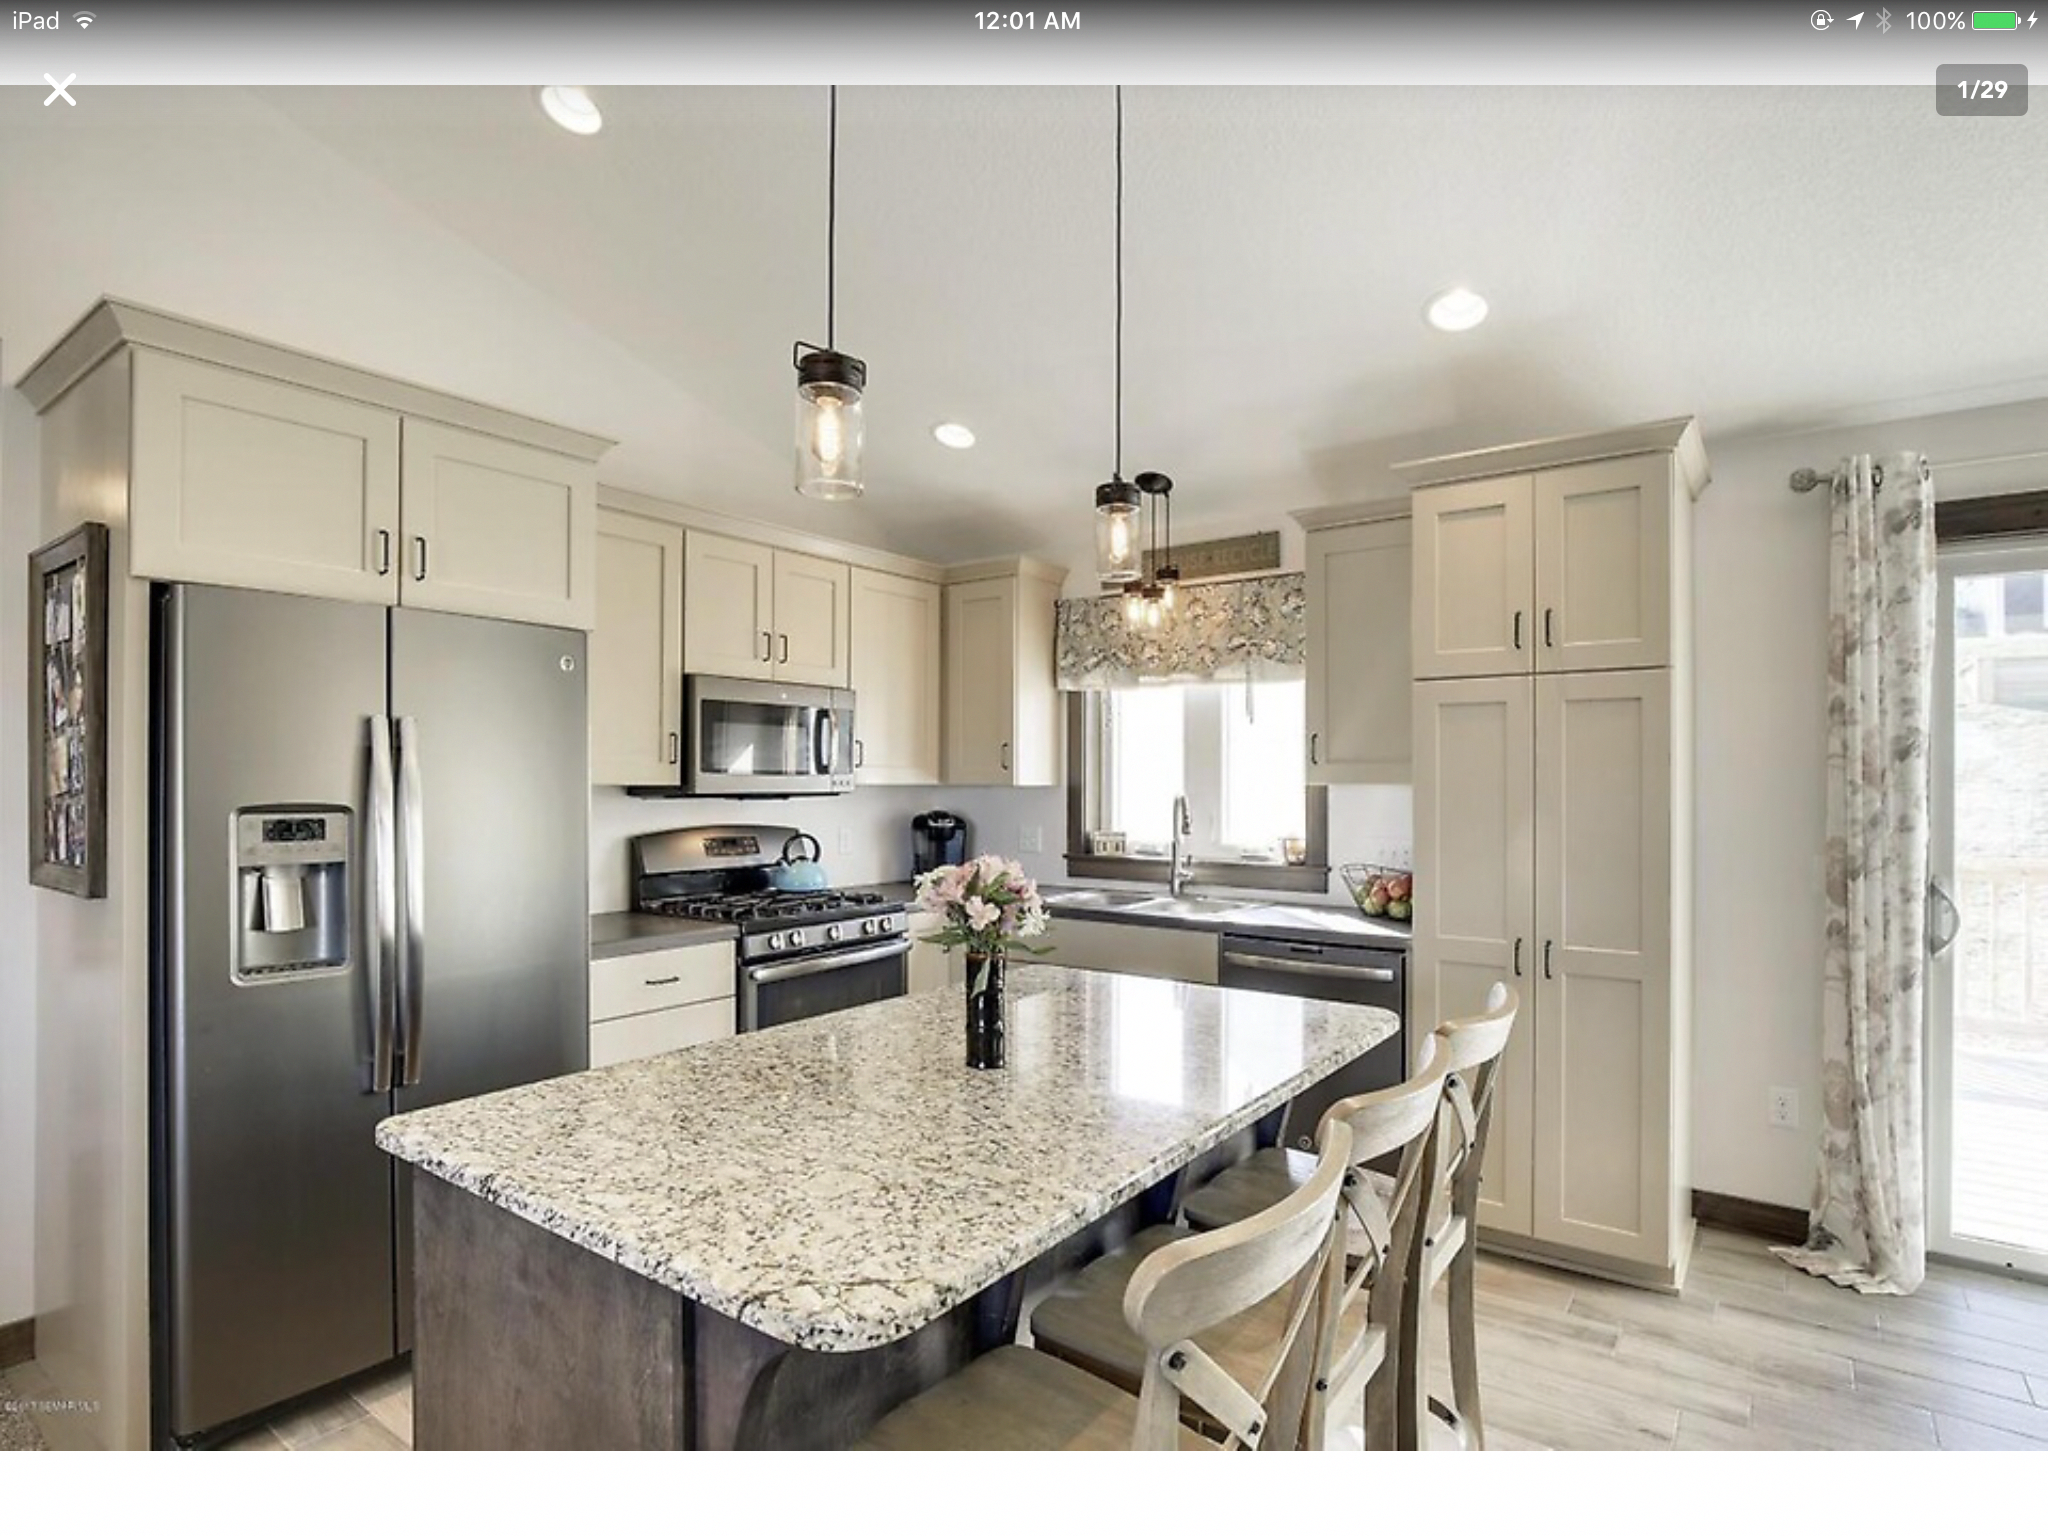 Supporting Corroborated Kitchen Redesigns Yes I Want This Deal Kitchen Remodel Small Kitchen Redesign Kitchen Layout